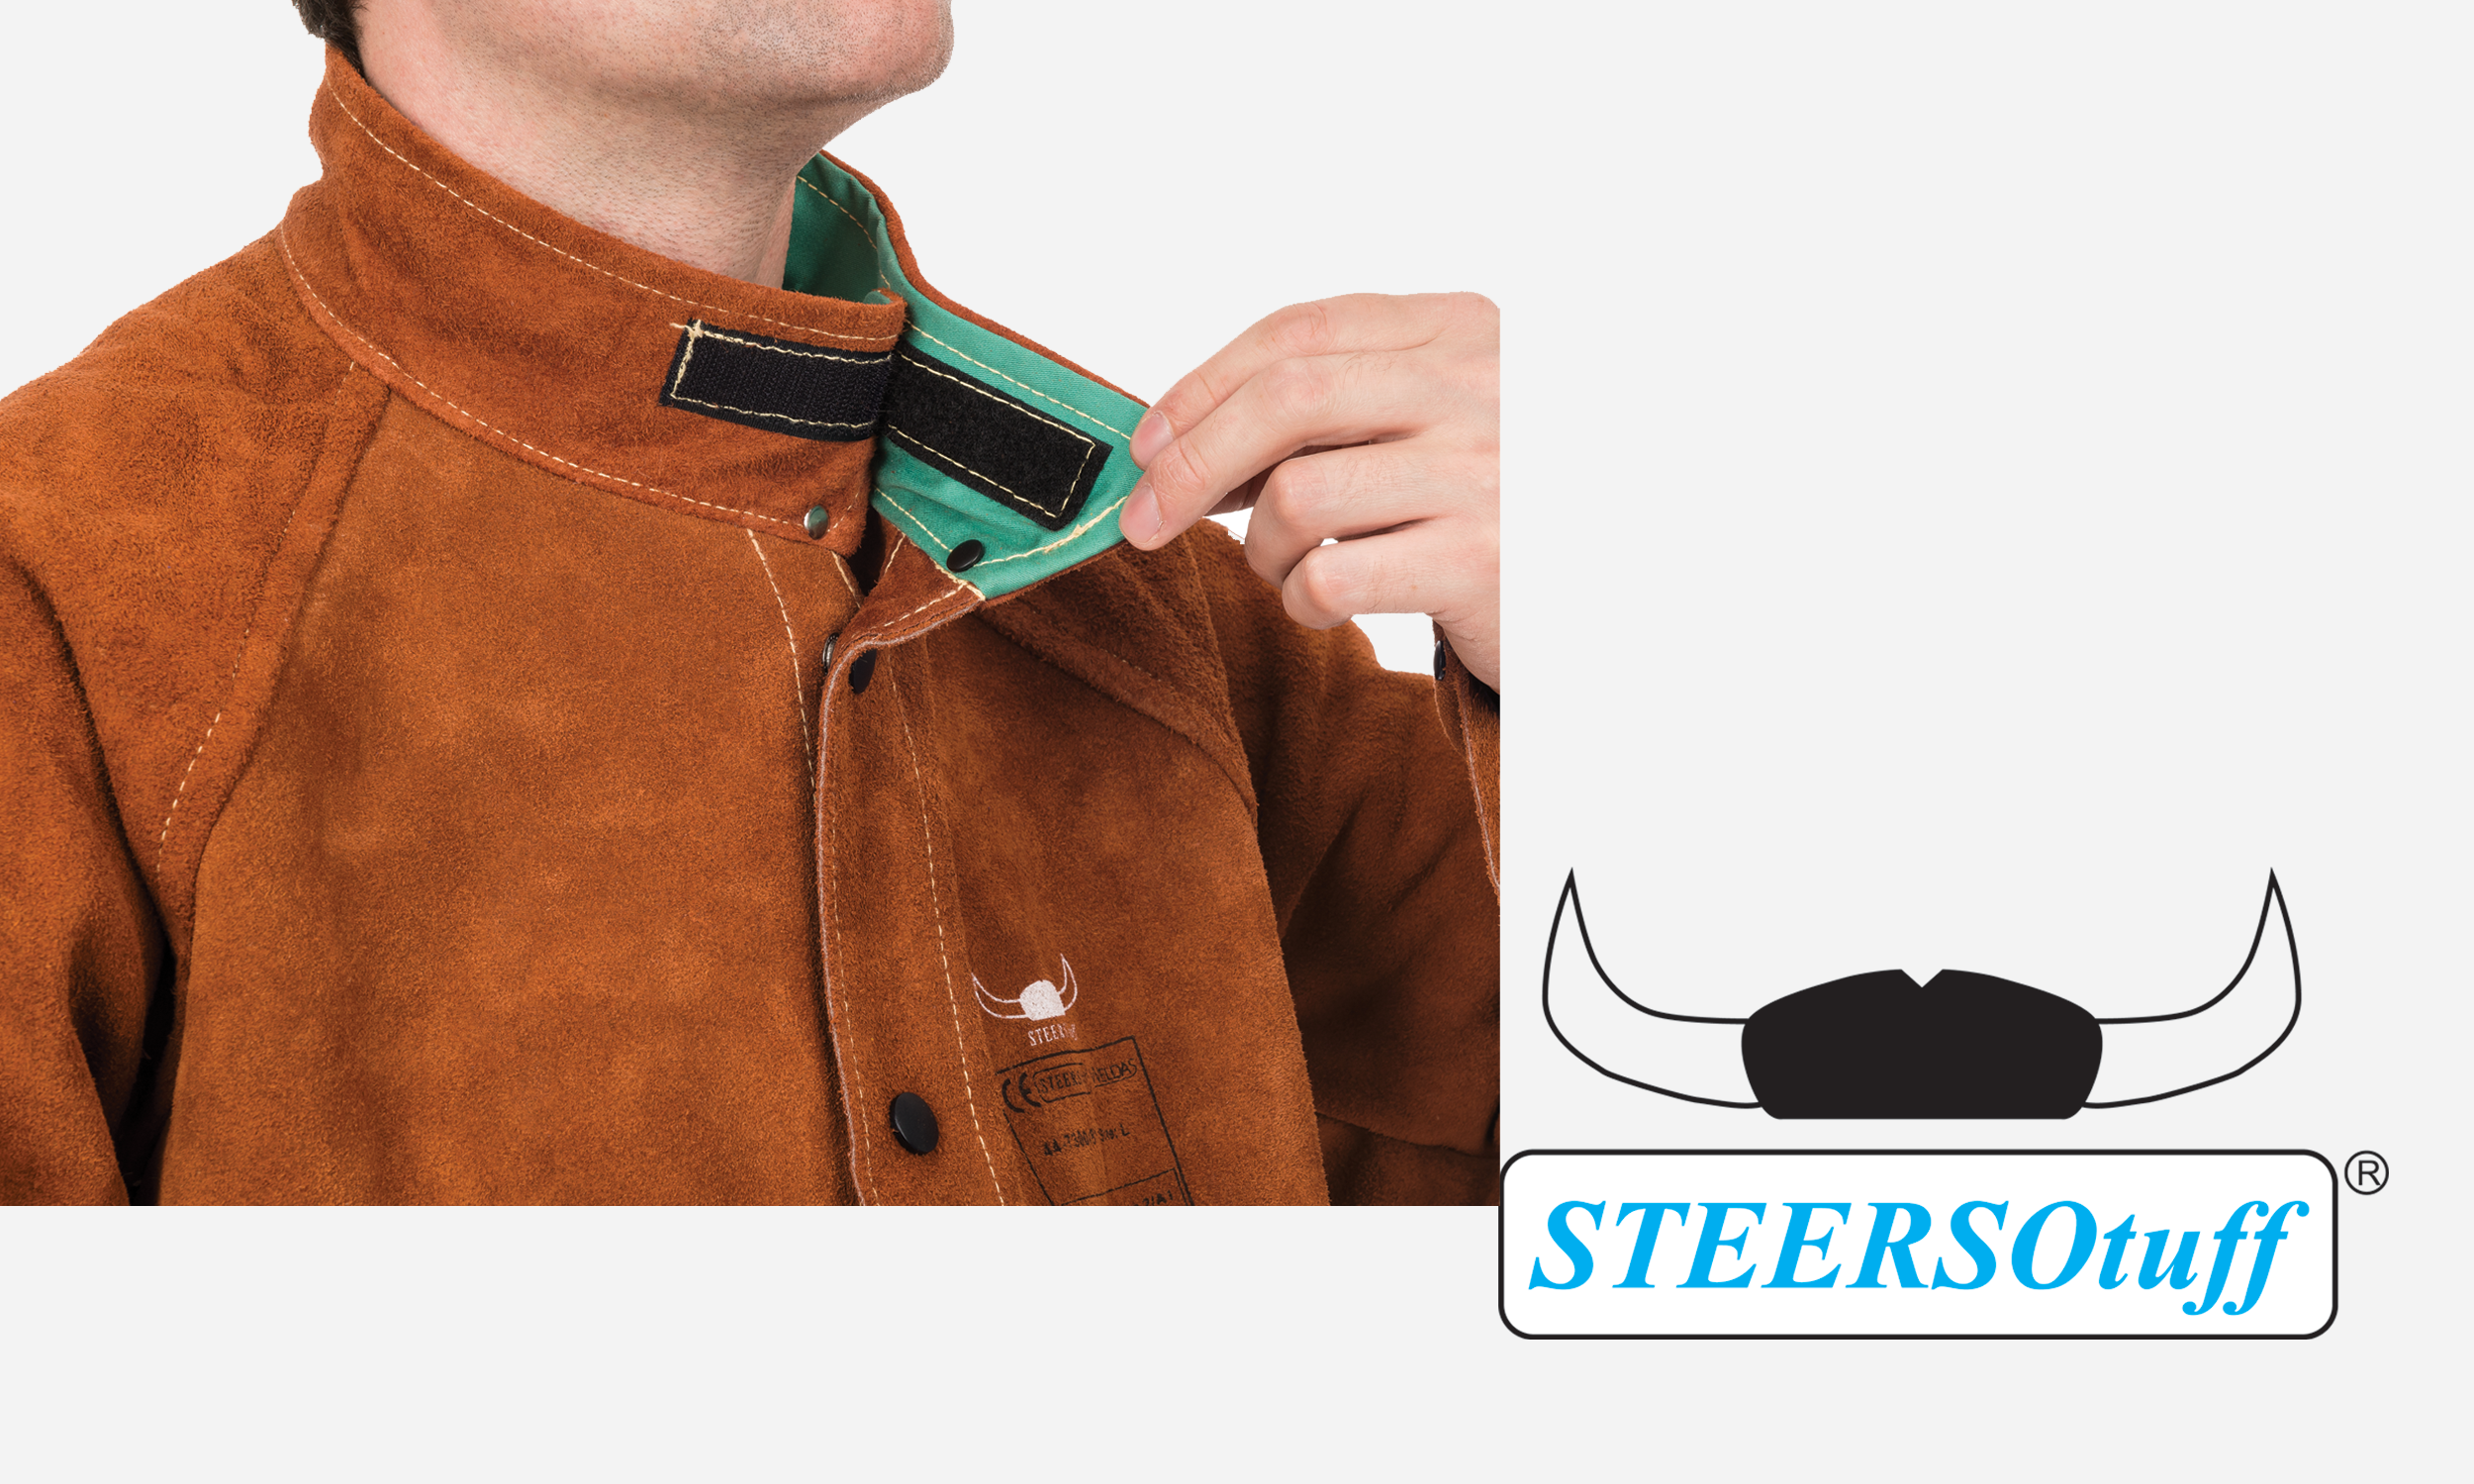 44-7800 STEERSOtuff Cape Sleeves Roll-up collar.png